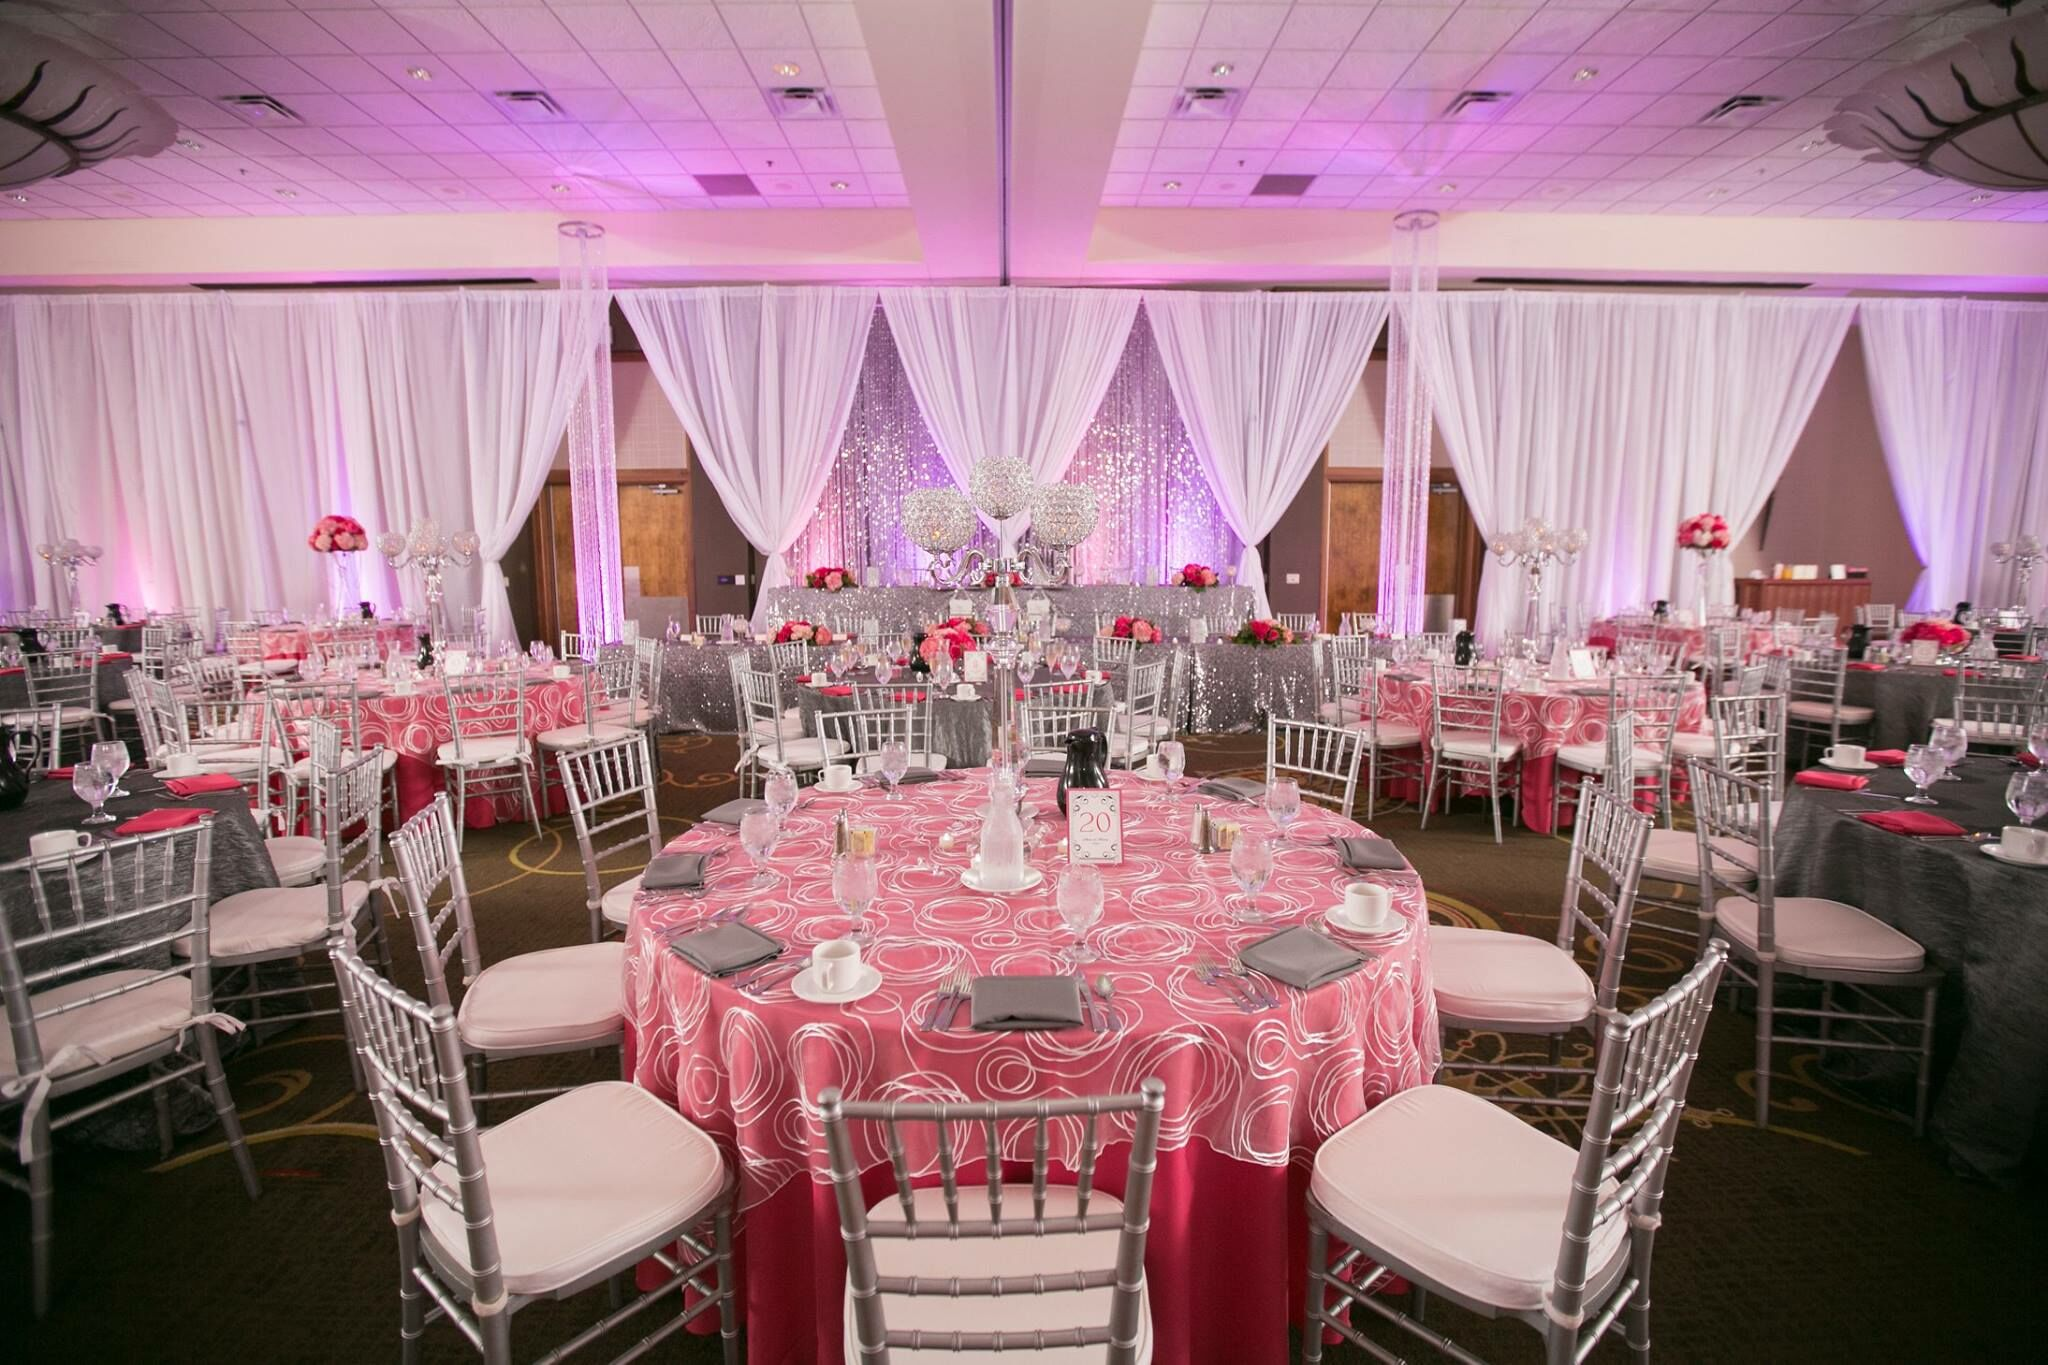 Wedding Venues in Midland, MI - The Knot